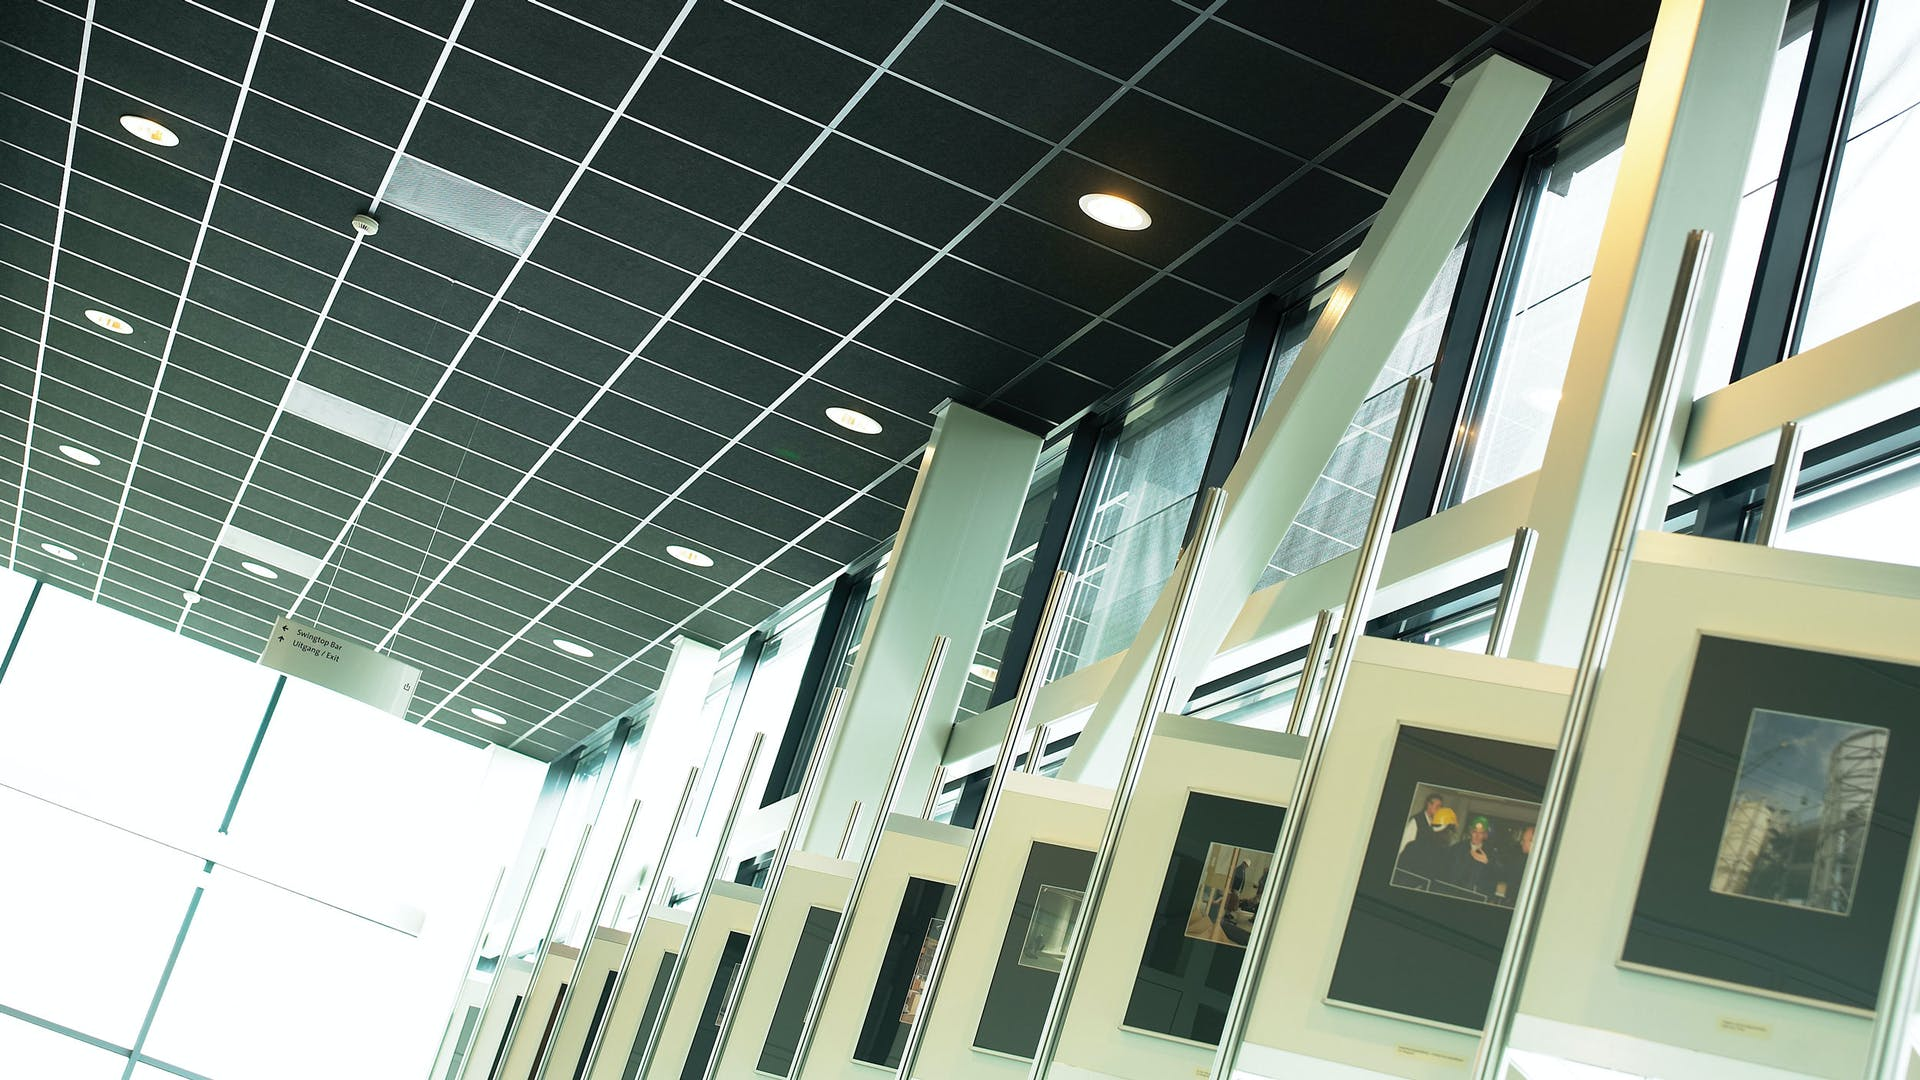 Acoustic ceiling with Rockfon Industrial Black ceiling tiles (Black finish, highest sound absorption, fast installation)